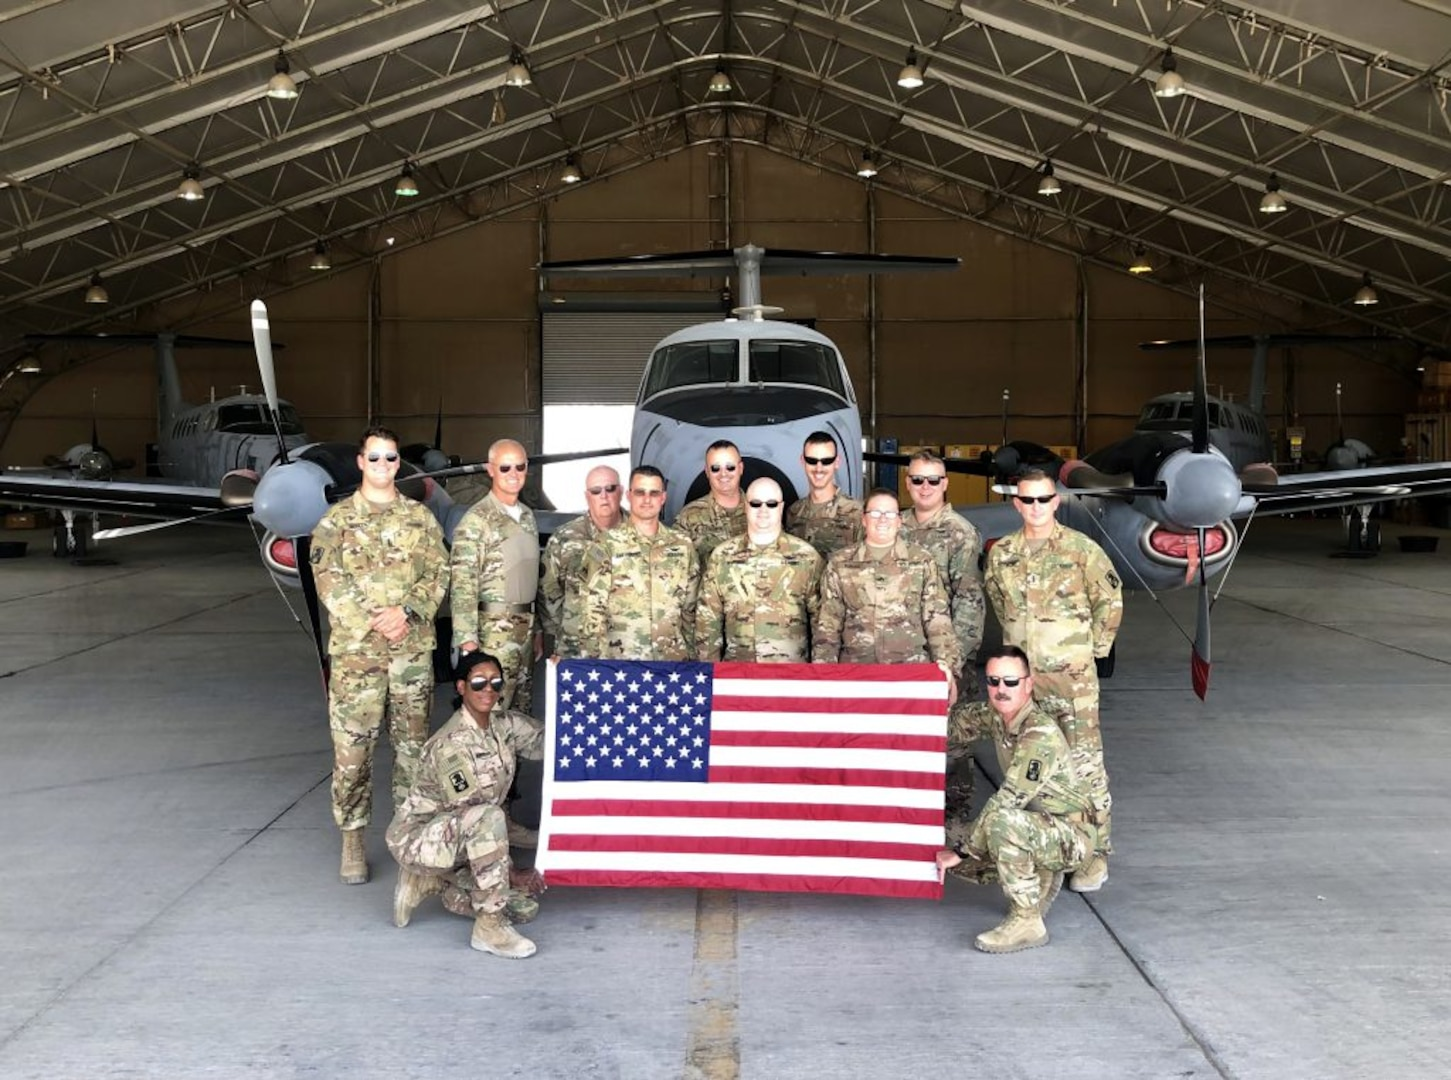 VNG fixed-wing aviators return to Virginia after successful deployment